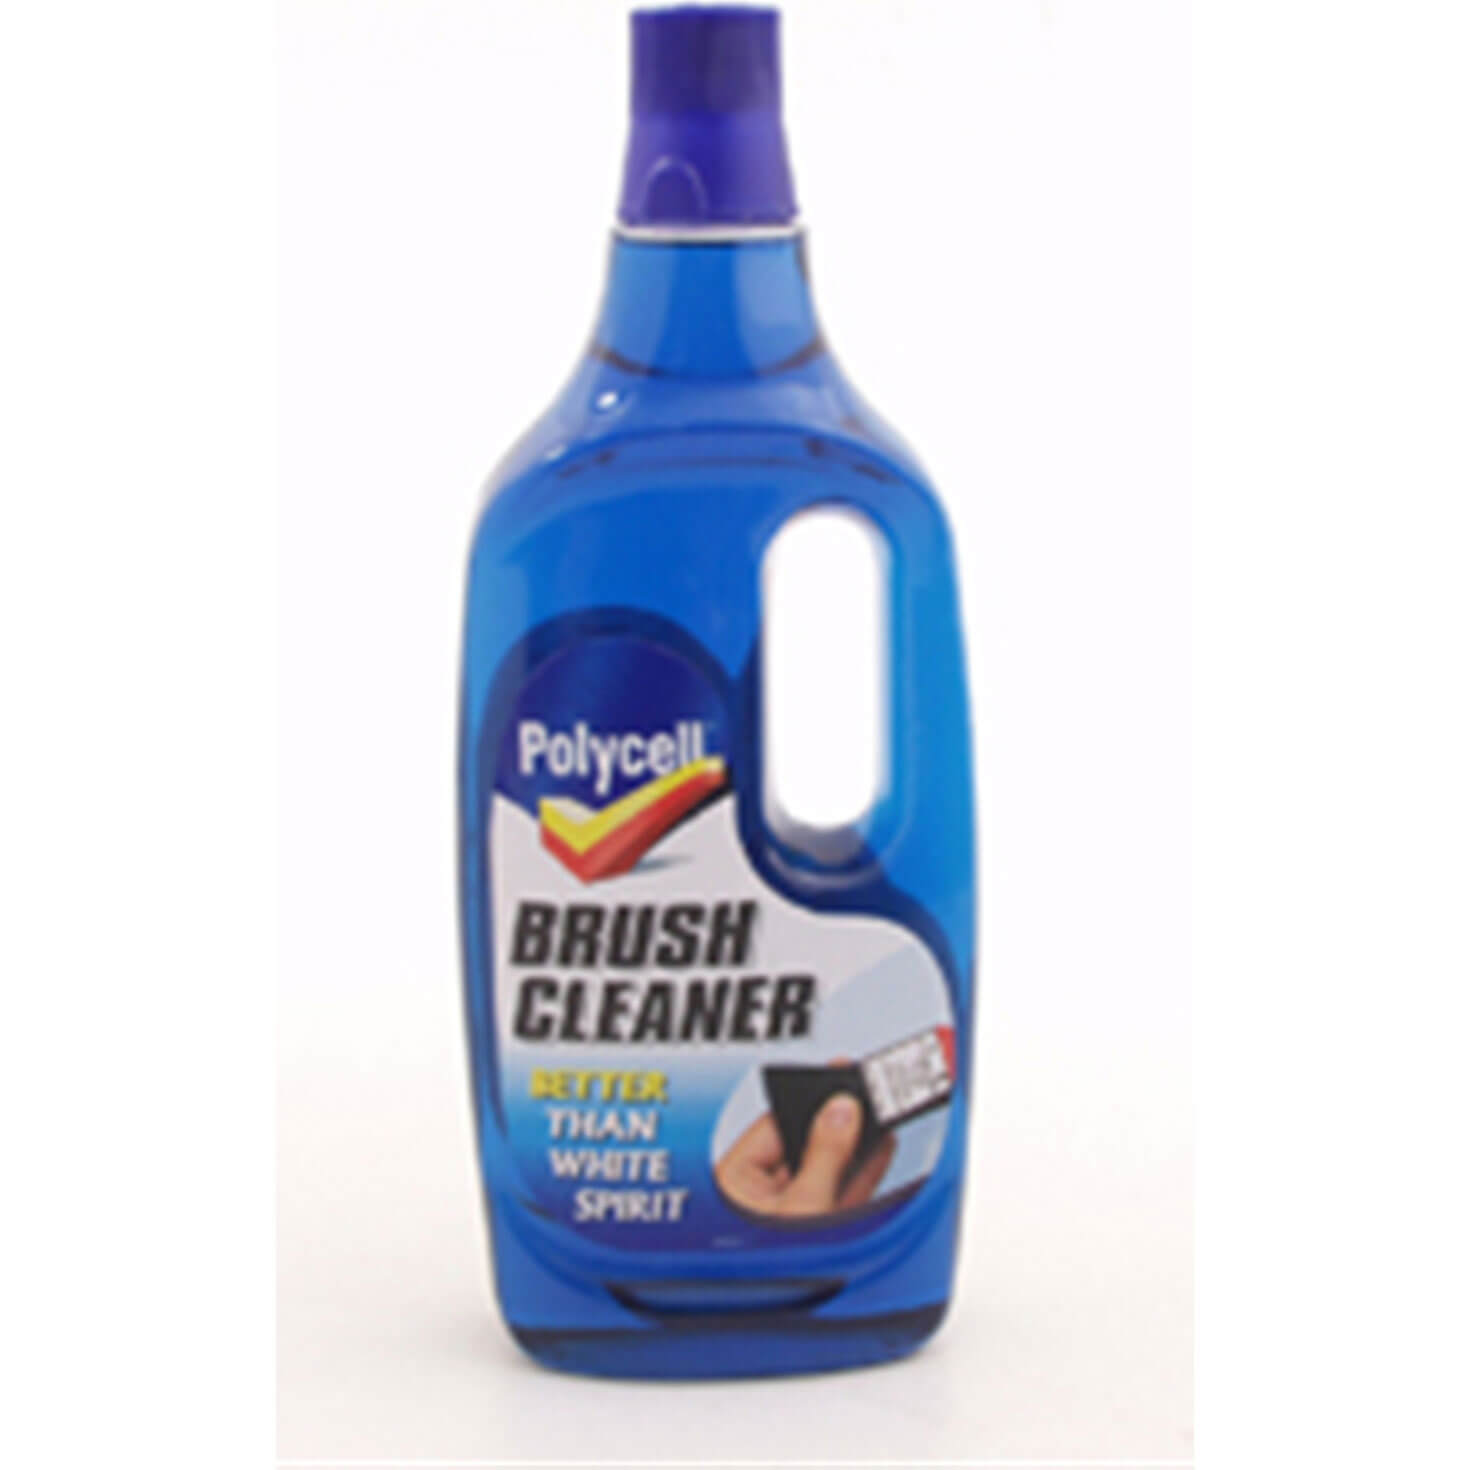 Image of Polycell Brush Cleaner 1l